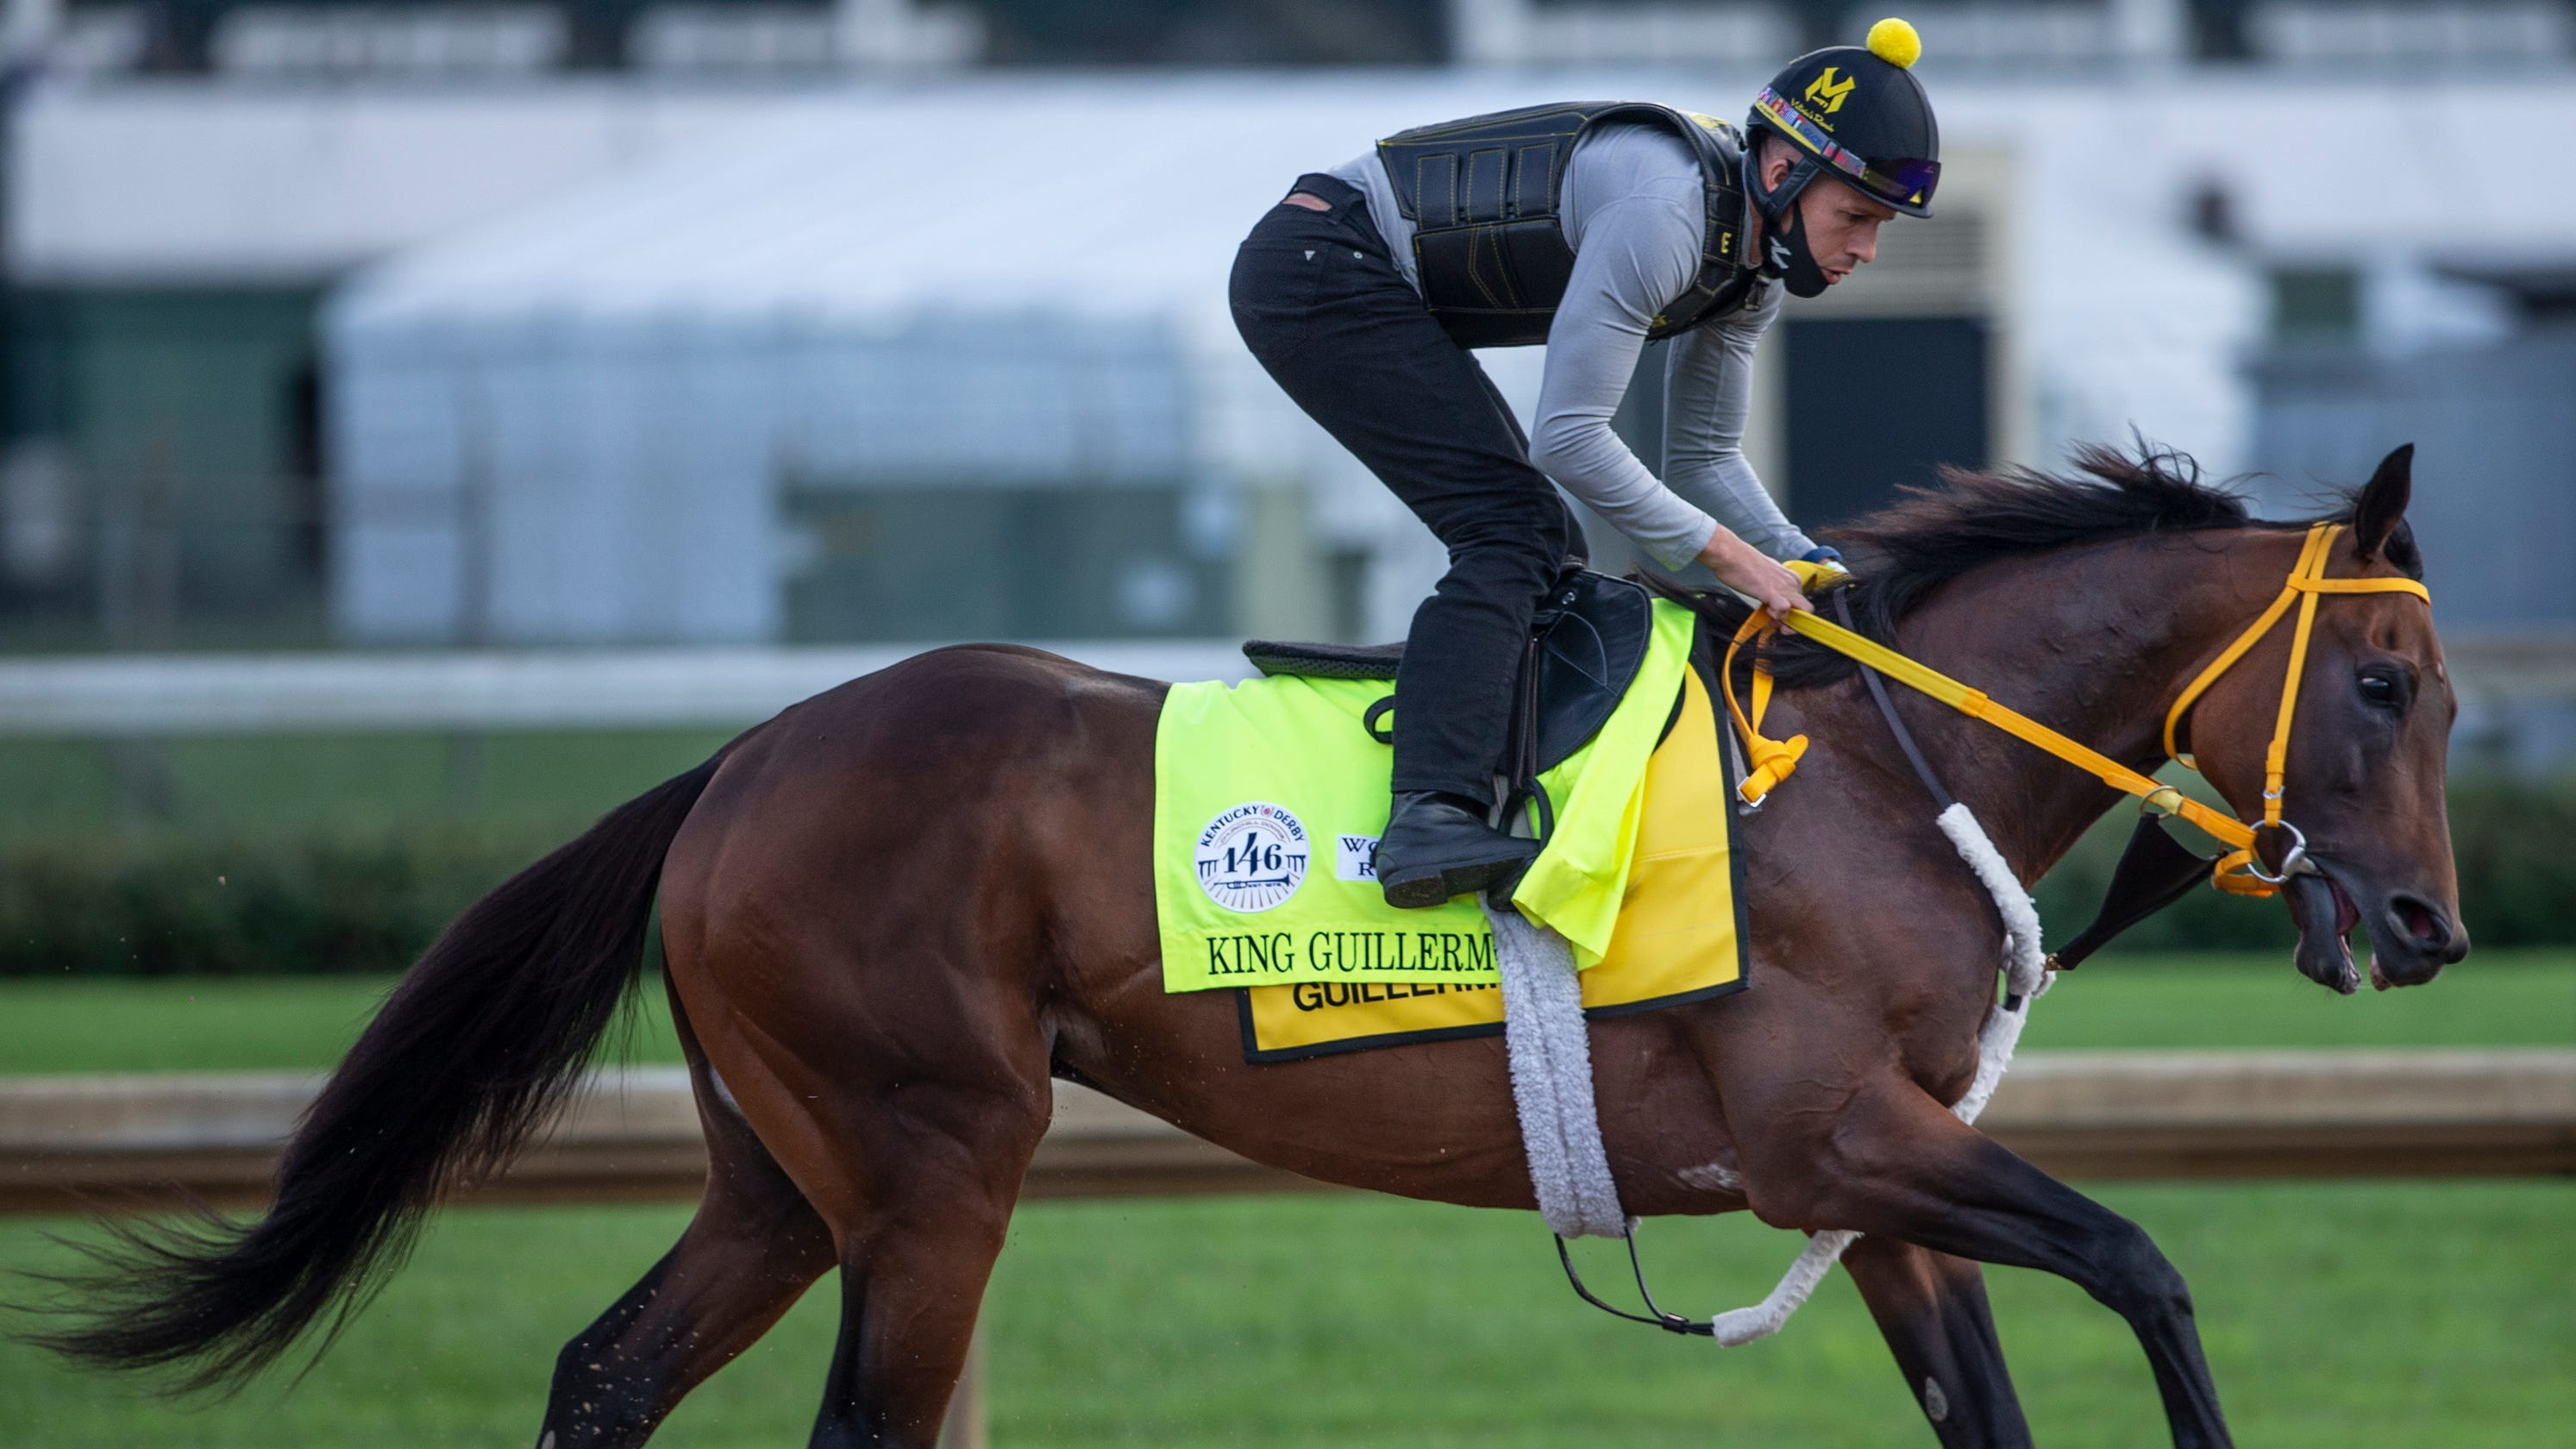 Trainer says King Guillermo out of Saturday's Kentucky Derby after spiking fever